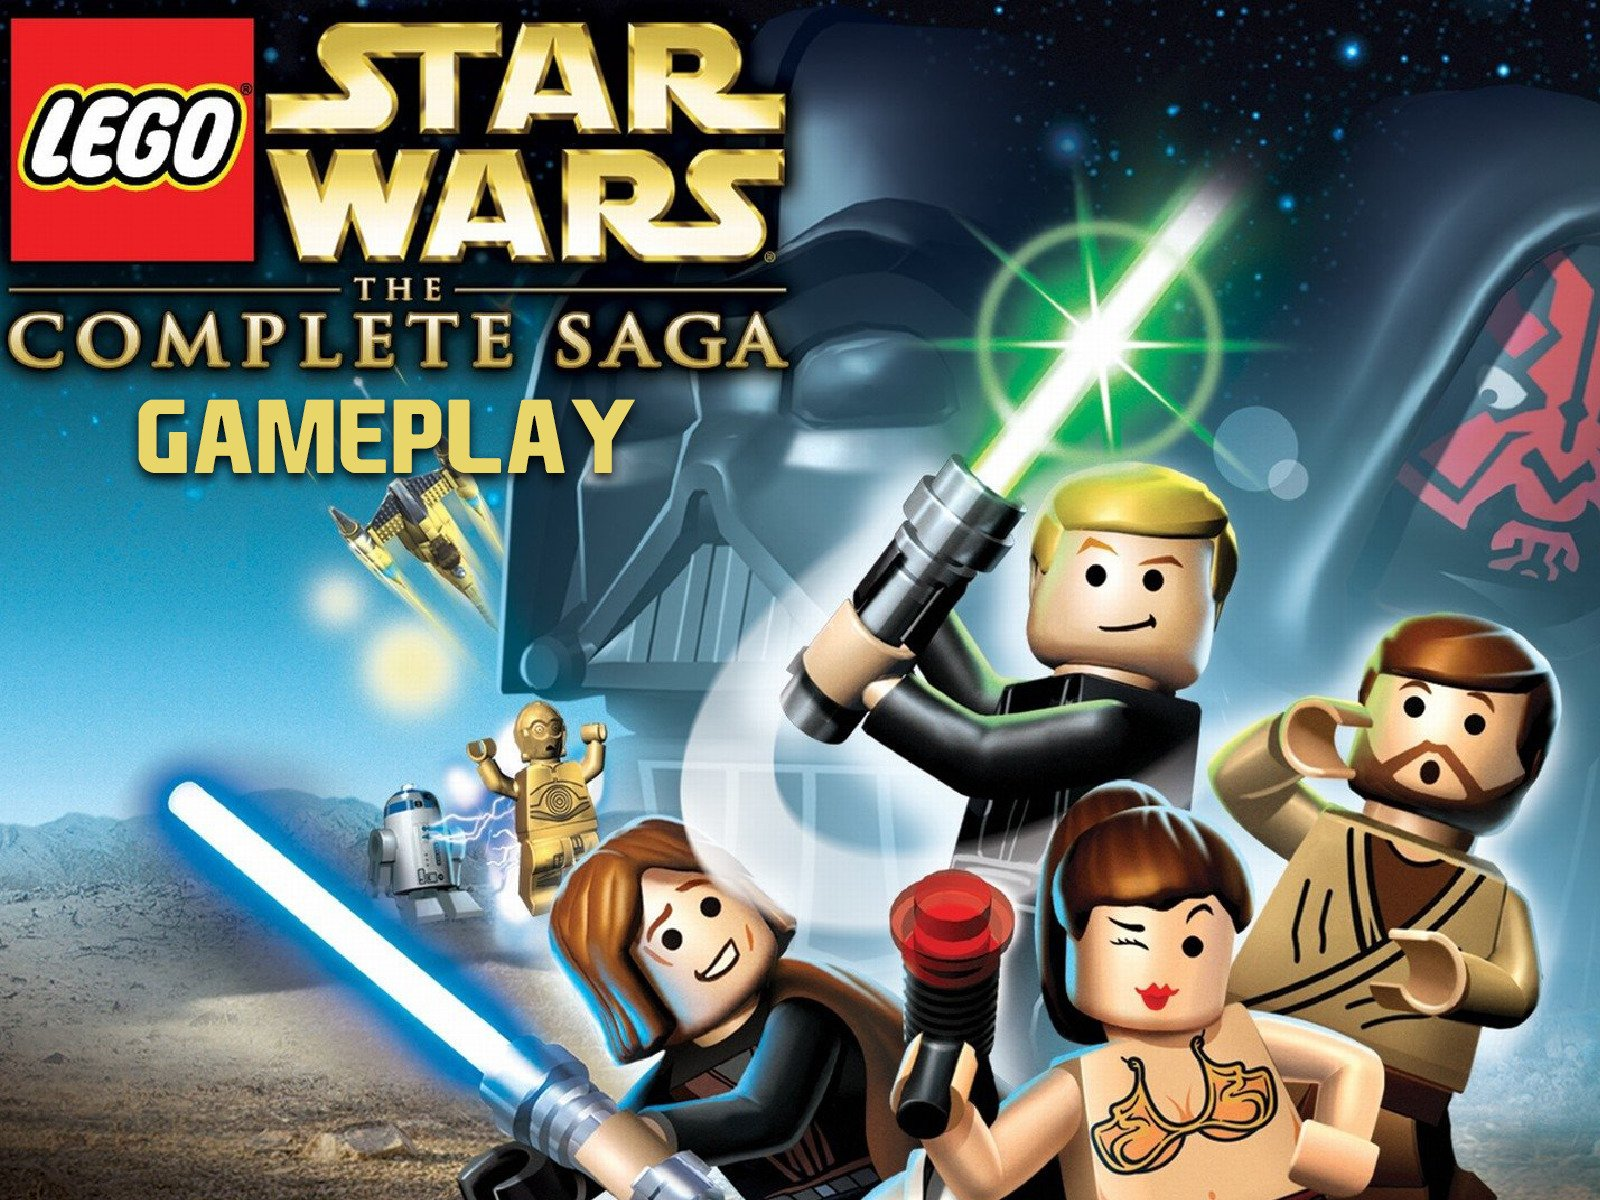 Clip: Lego Star Wars Complete Saga Gameplay - Season 1